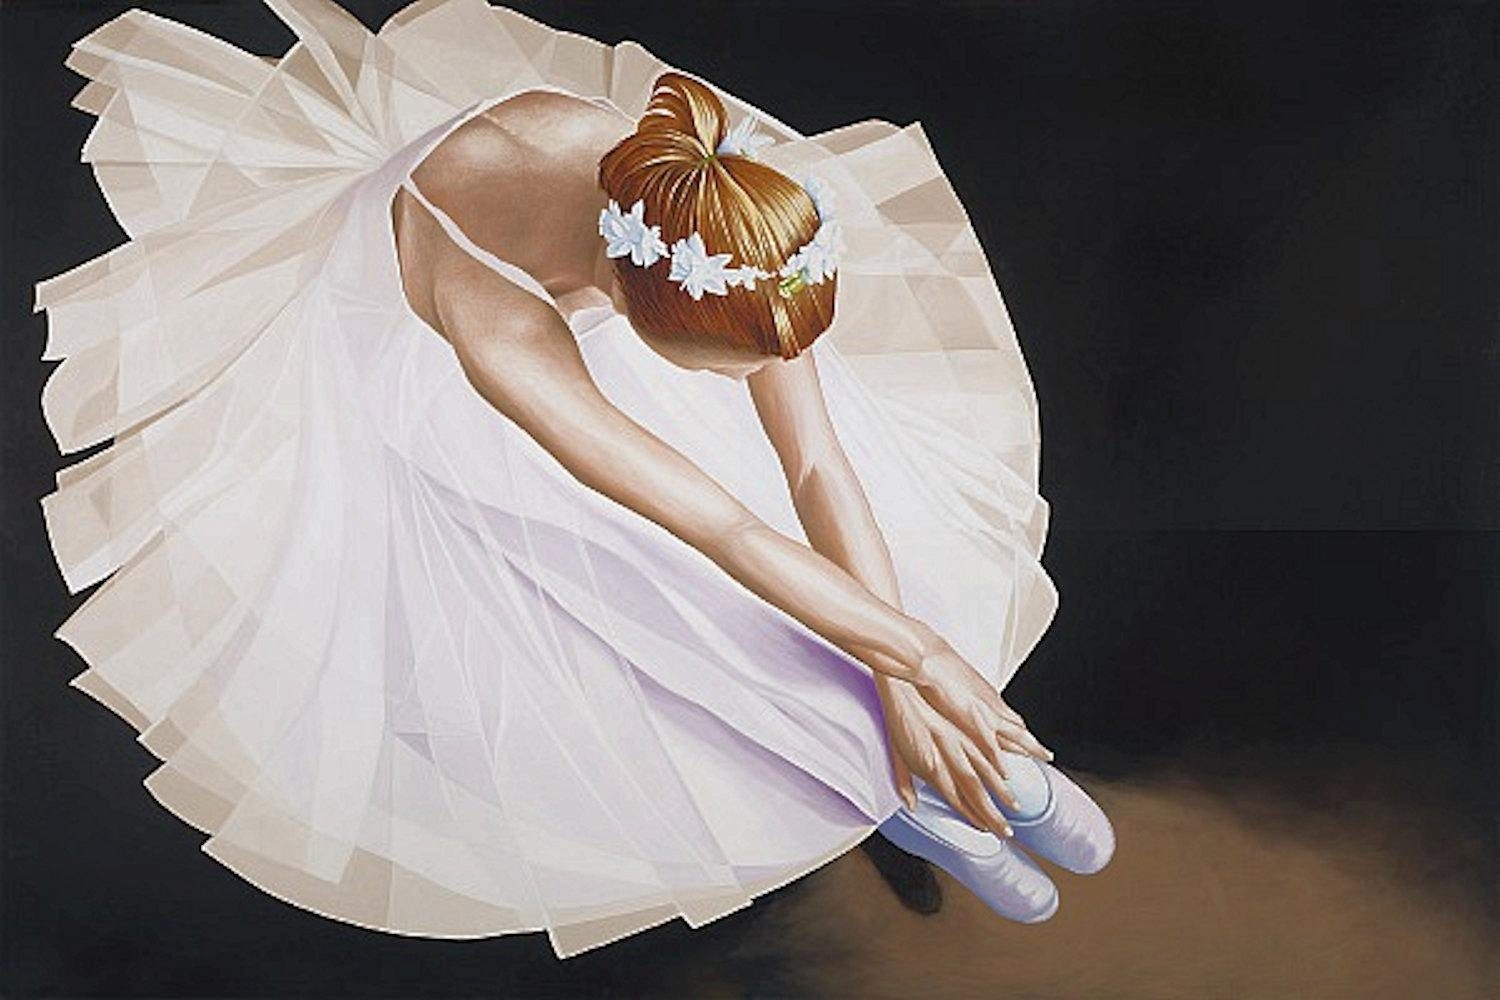 Home affaire, Leinwandbild »K.BLACK/Ballerina«, 70/50 cm